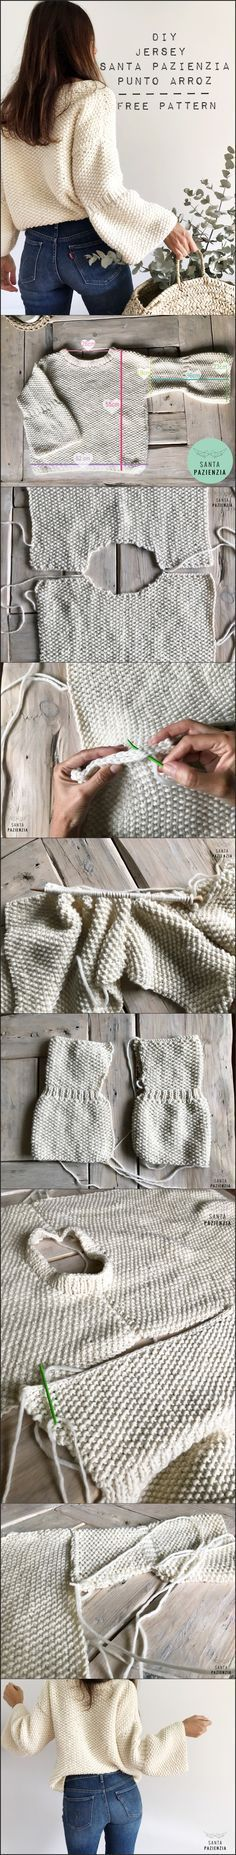 988 best k n i t t i n g images on Pinterest | Yarns, Knitting ...